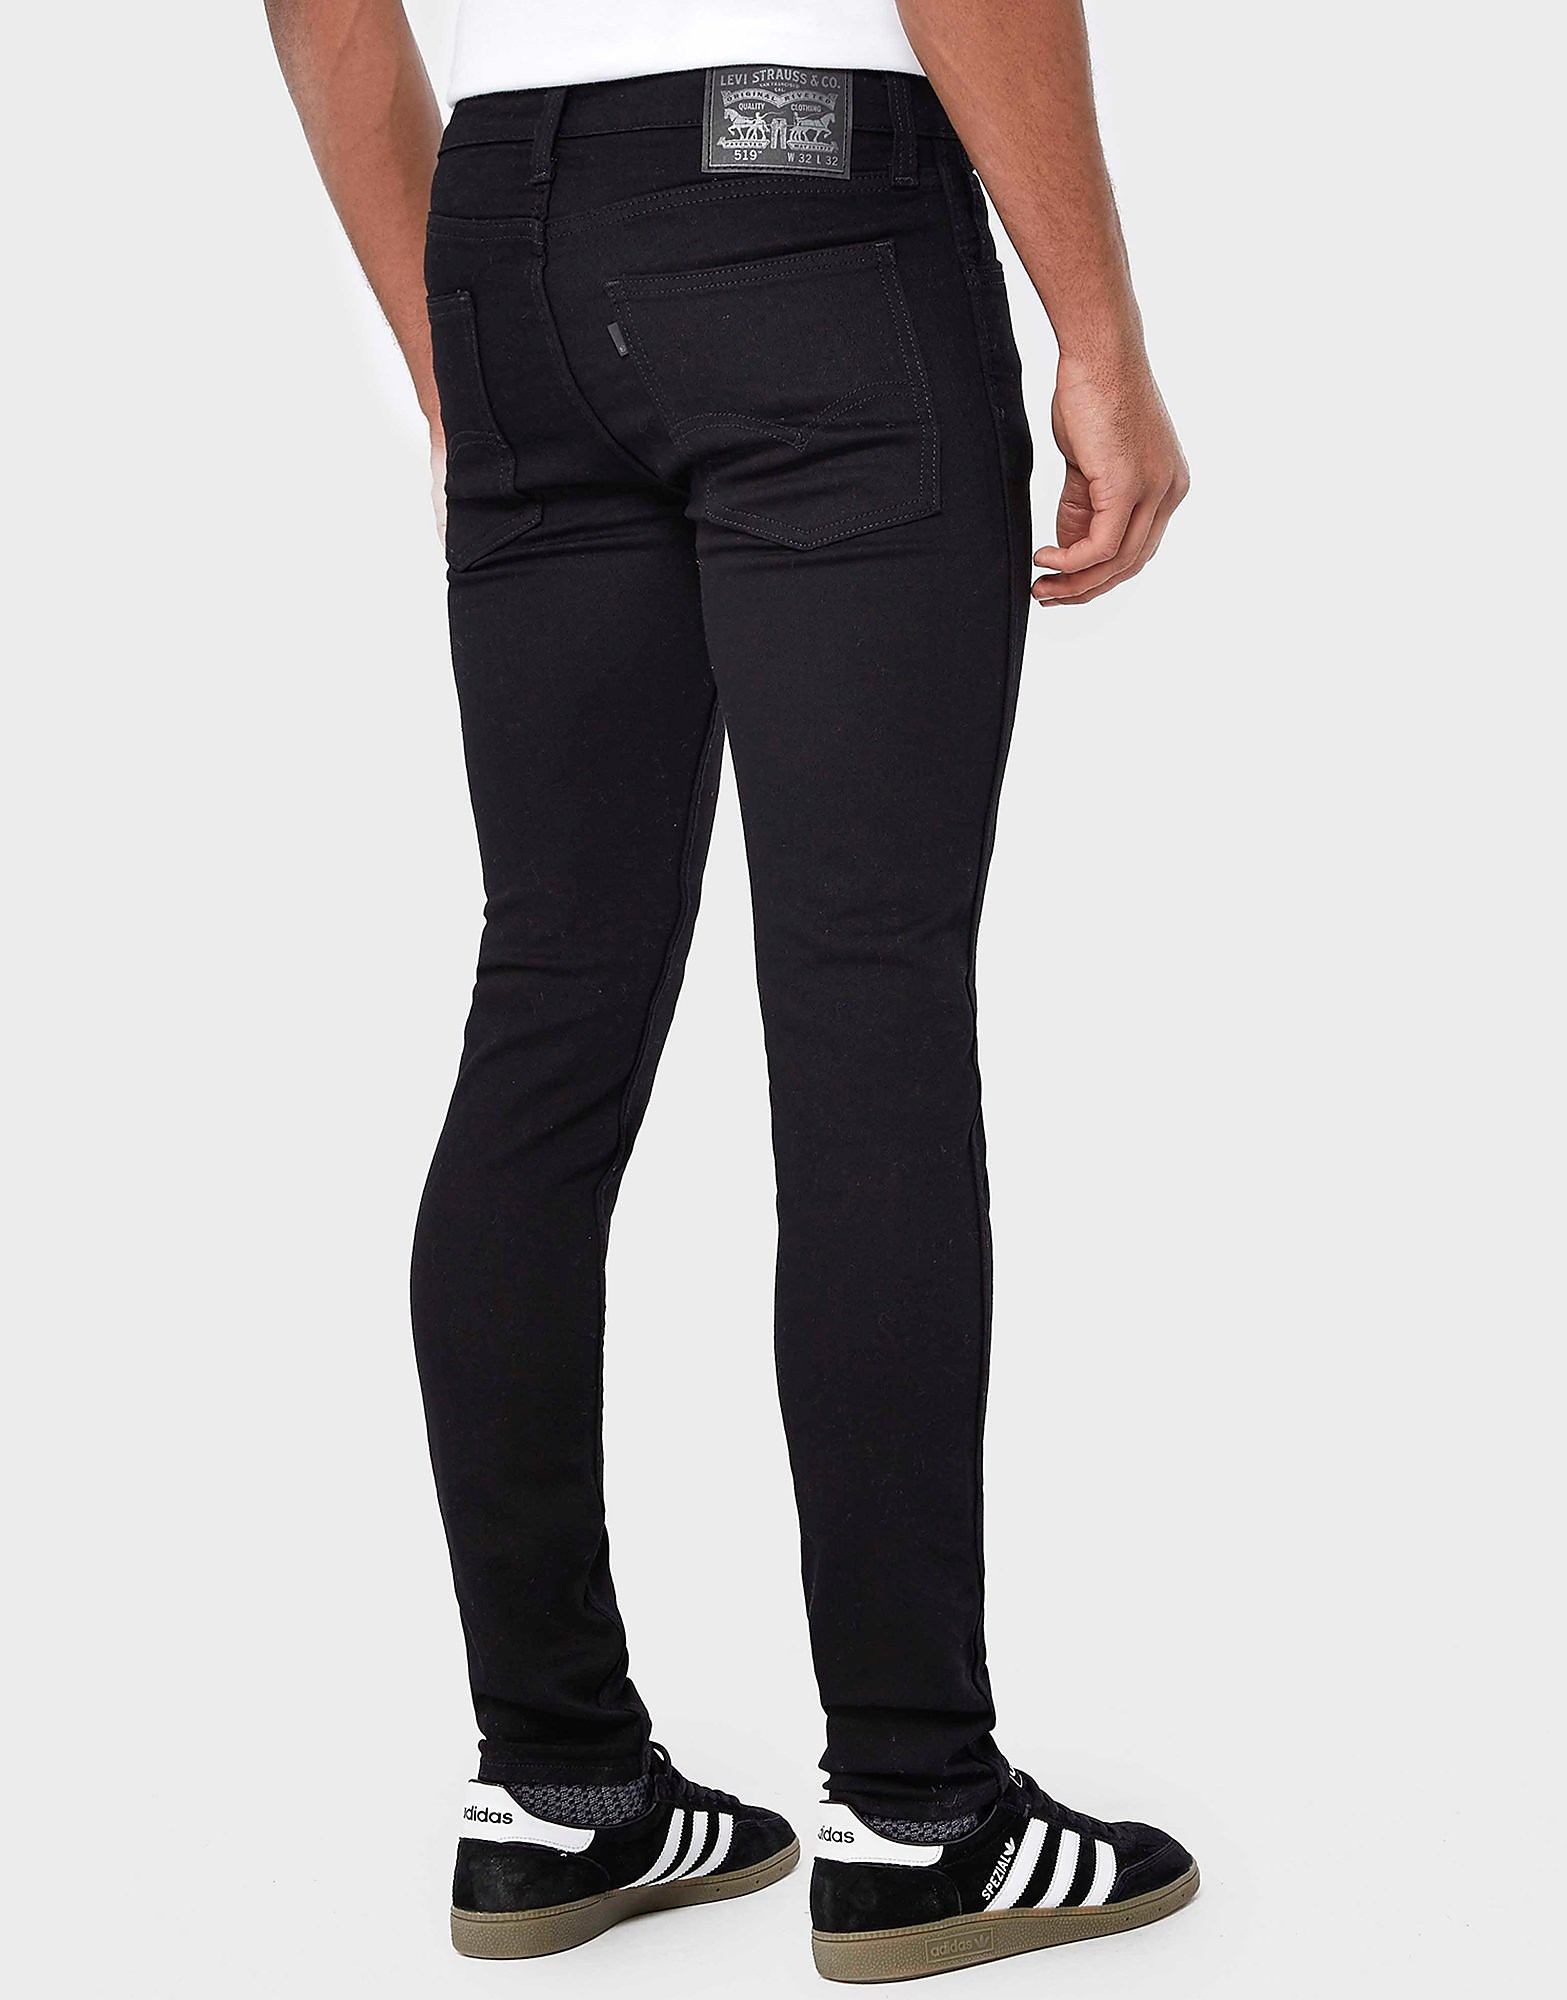 Levis 519 Skinny Jeans